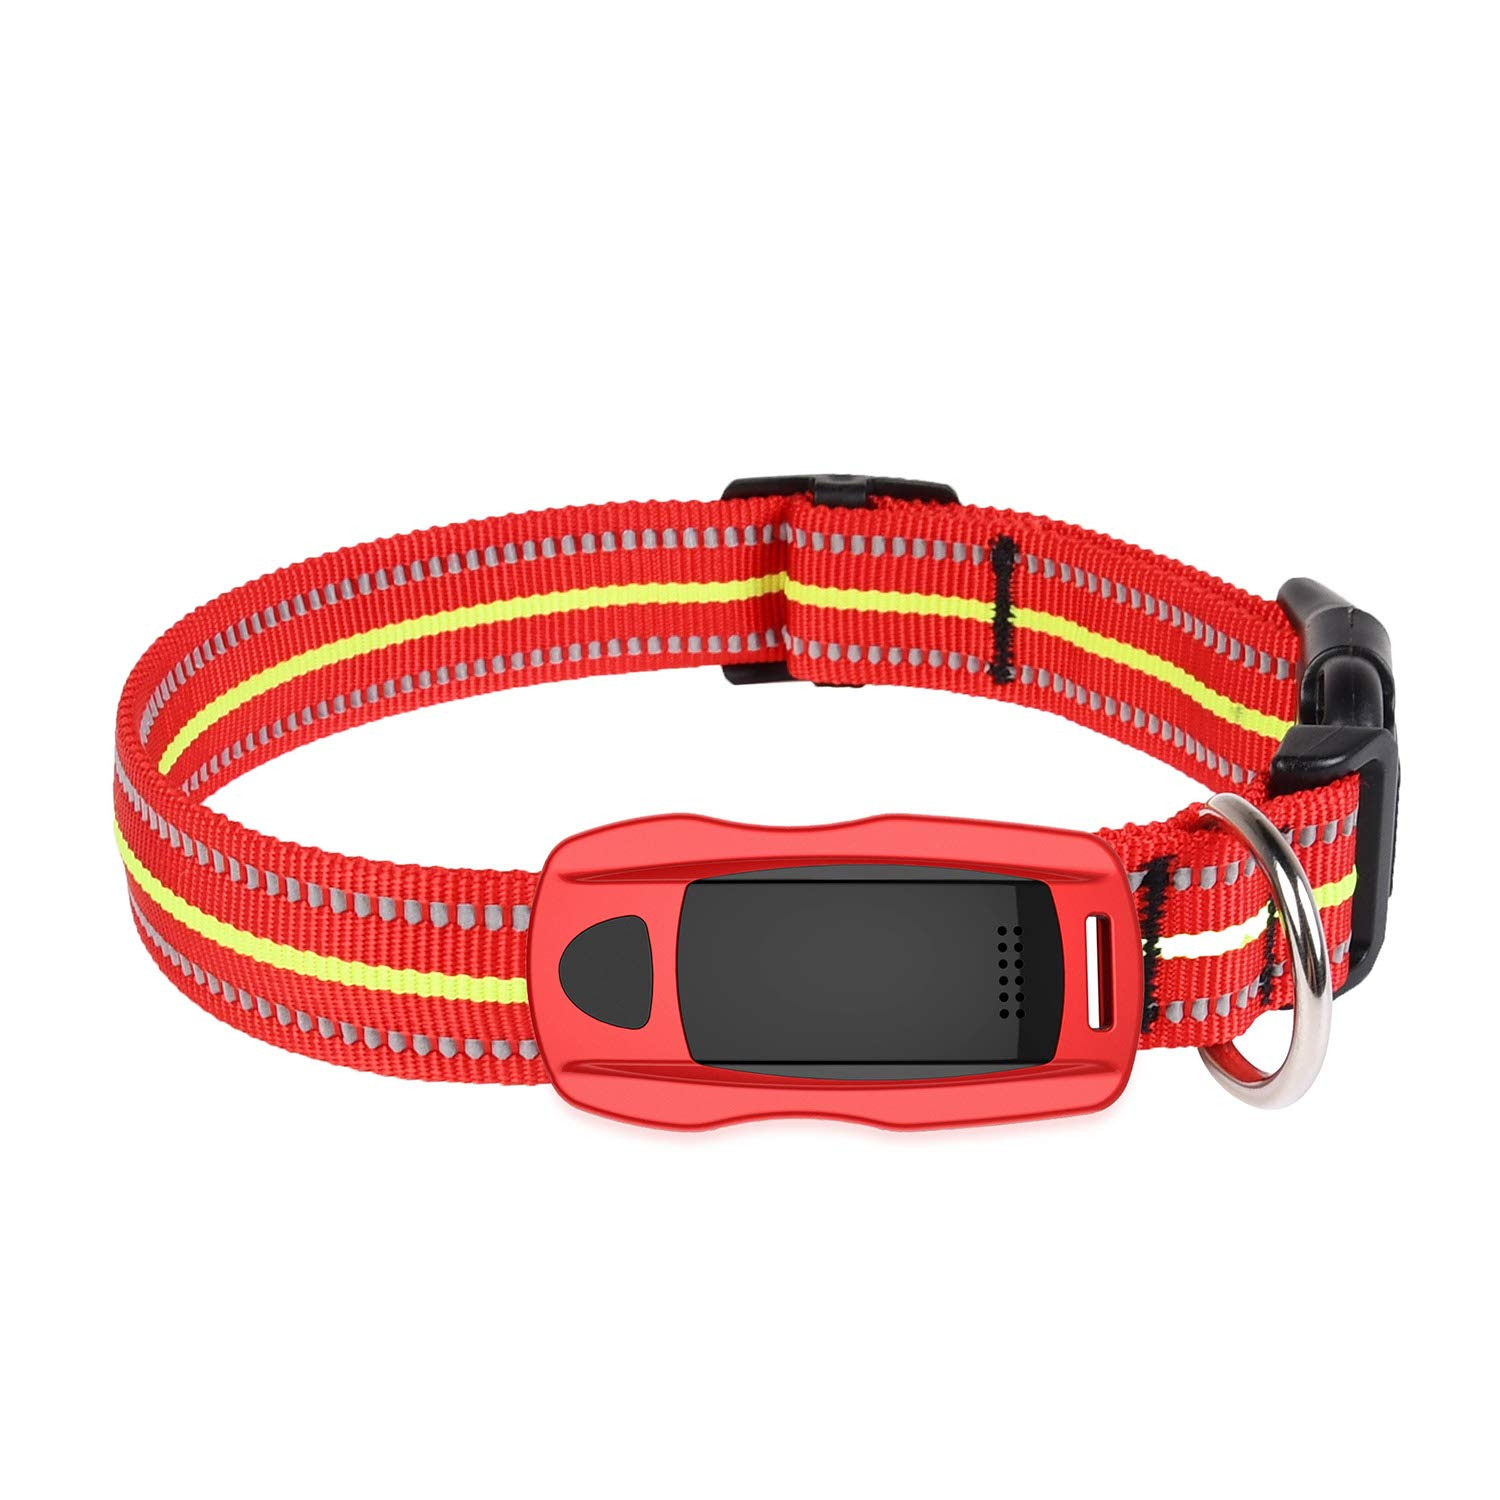 Dog Cat Pet Smart Tag Activity Tracker - Lightweight Lightweight, Waterproof, Activity Monitor Pet Health Monitor, Suitable for Dogs and Cats,Red